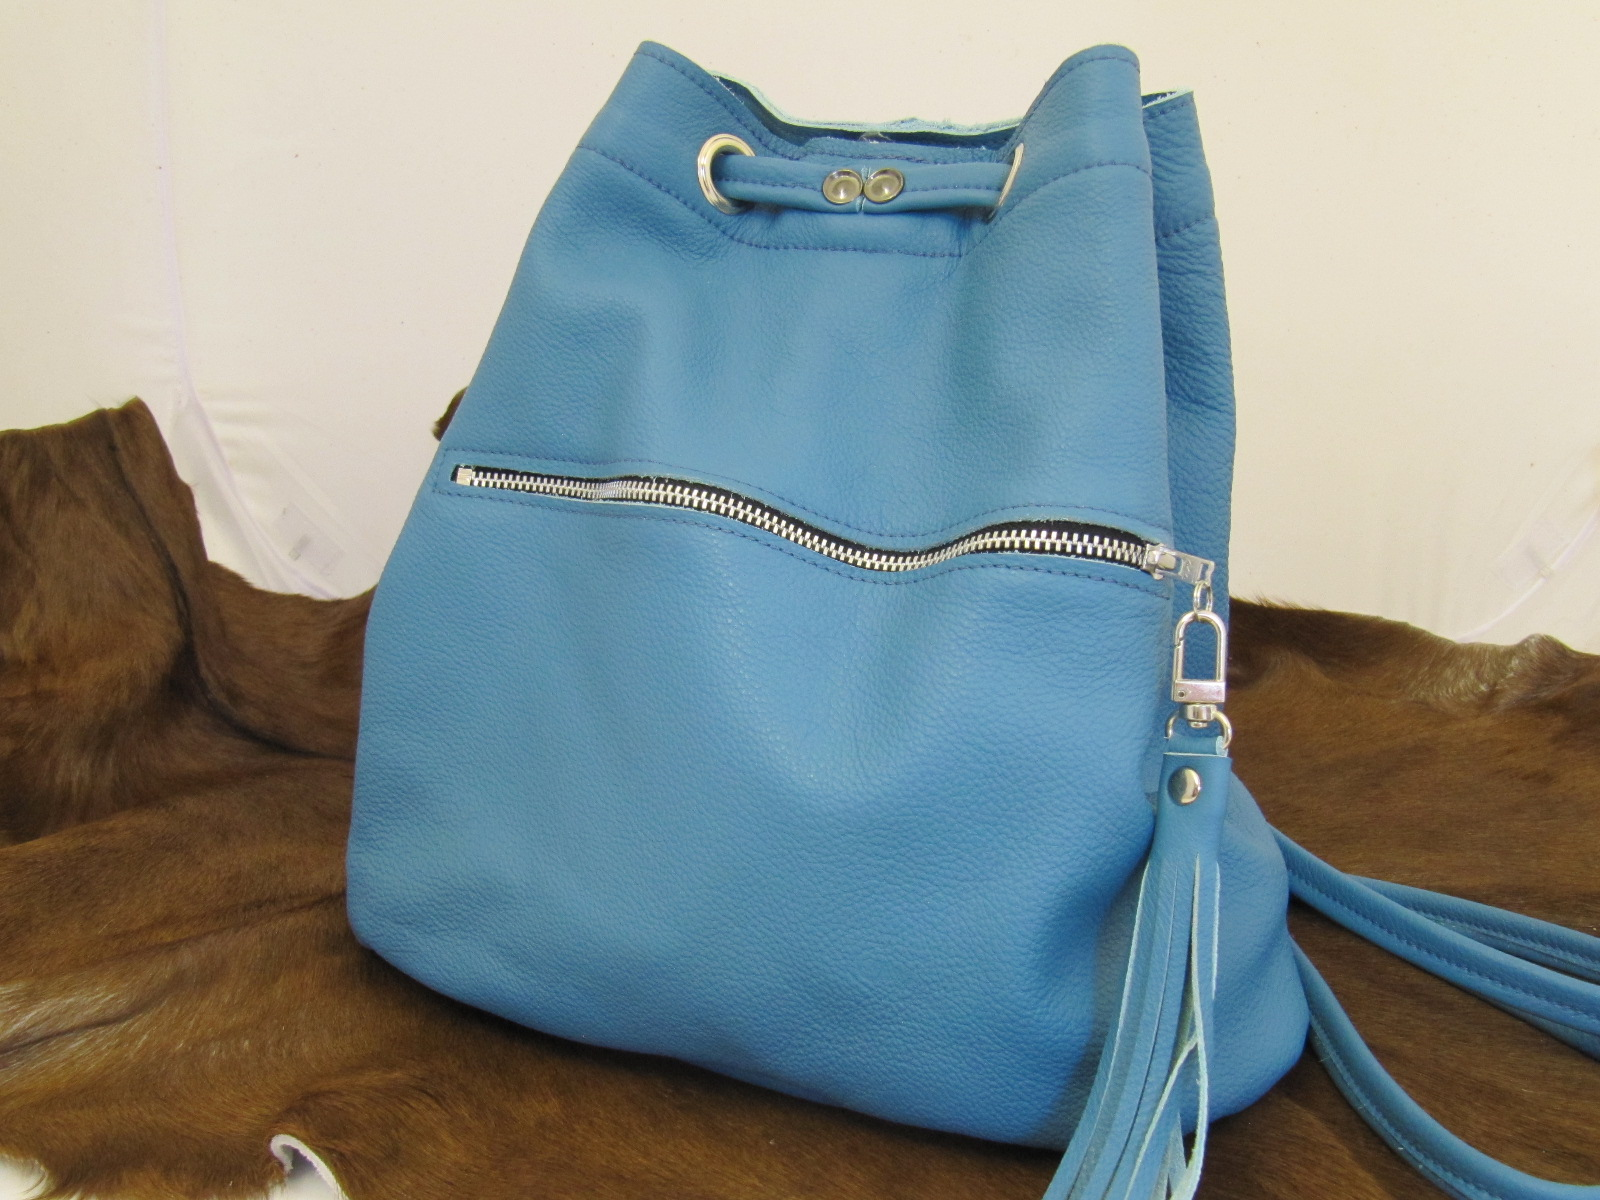 Turquoise leather duffle bag